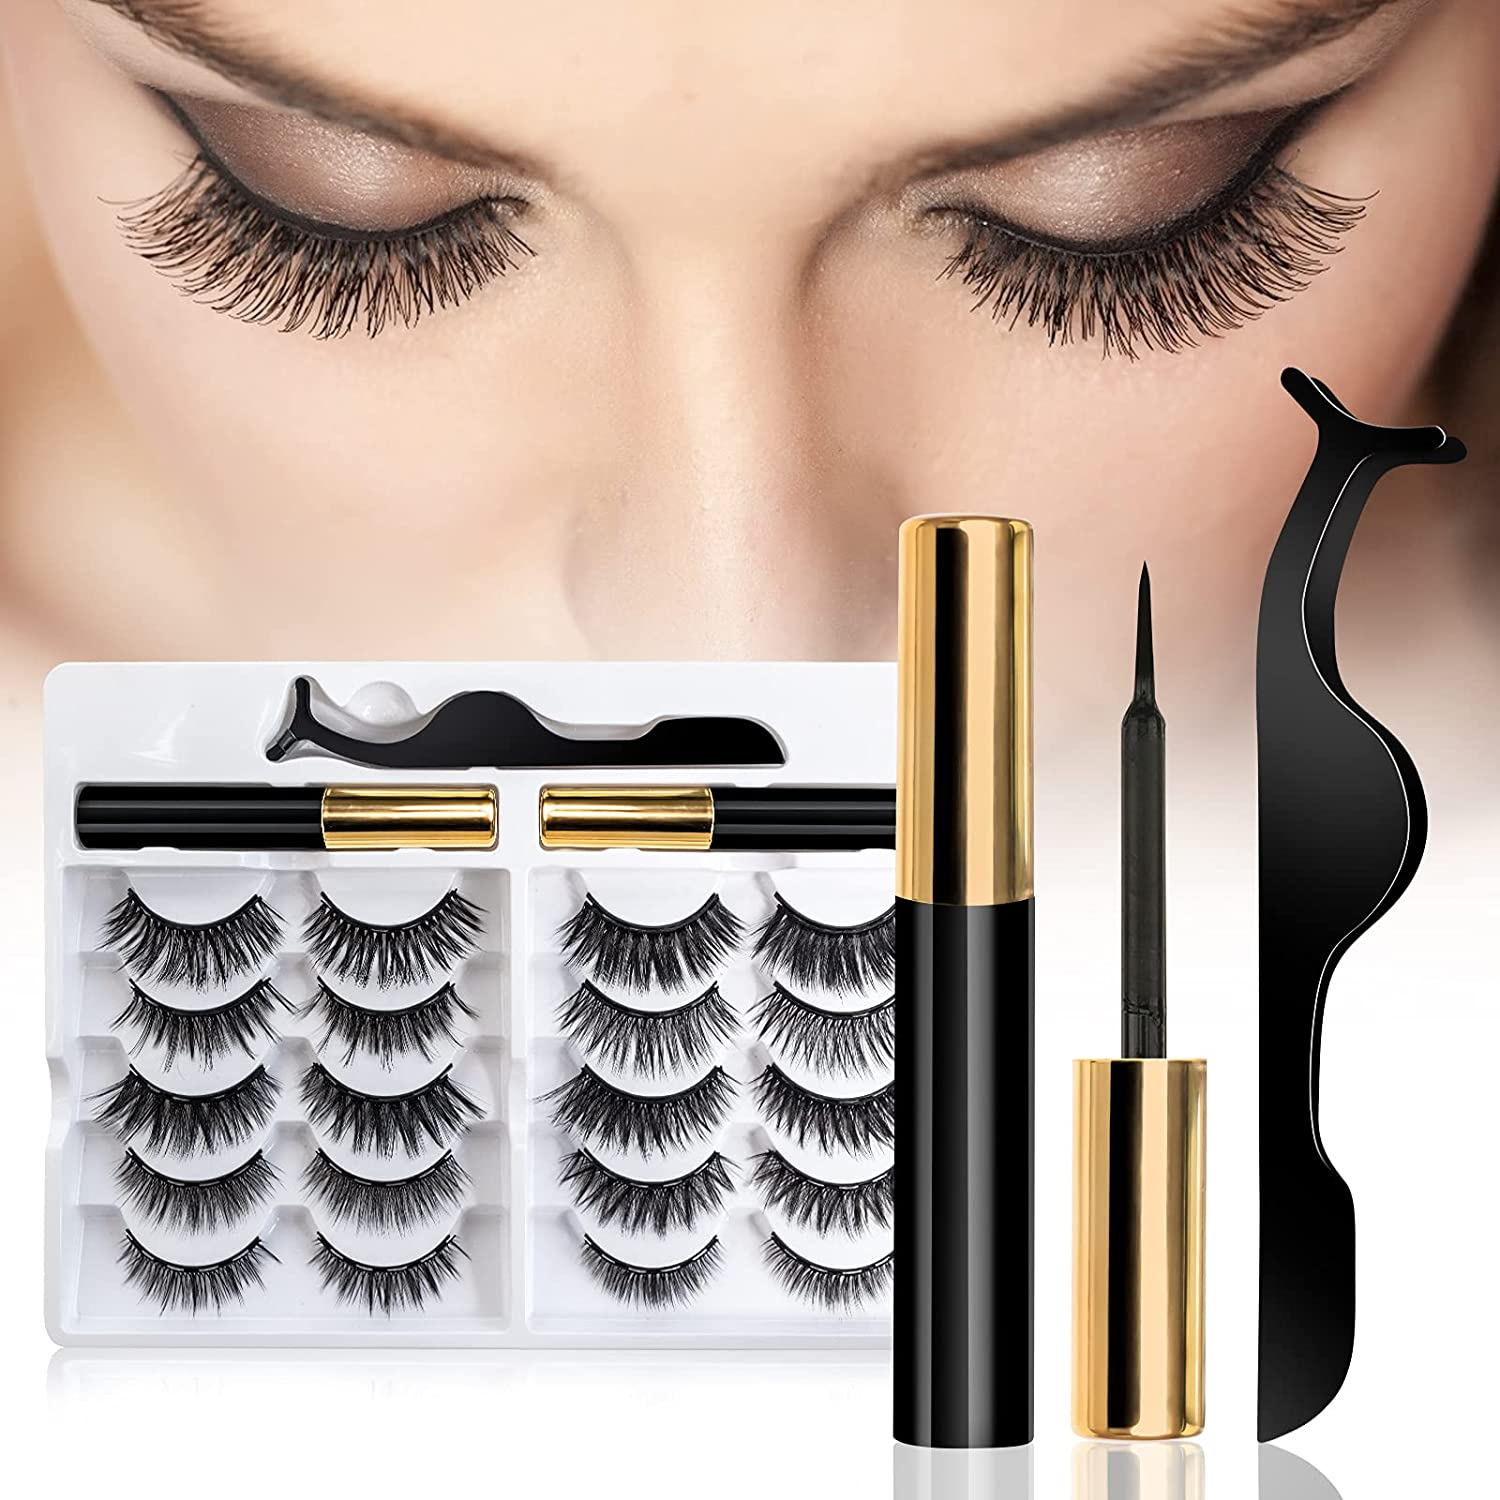 Magnetic Lashes Eyelash 10 Fcicarn Pairs Mag Selling Max 56% OFF rankings Reusable